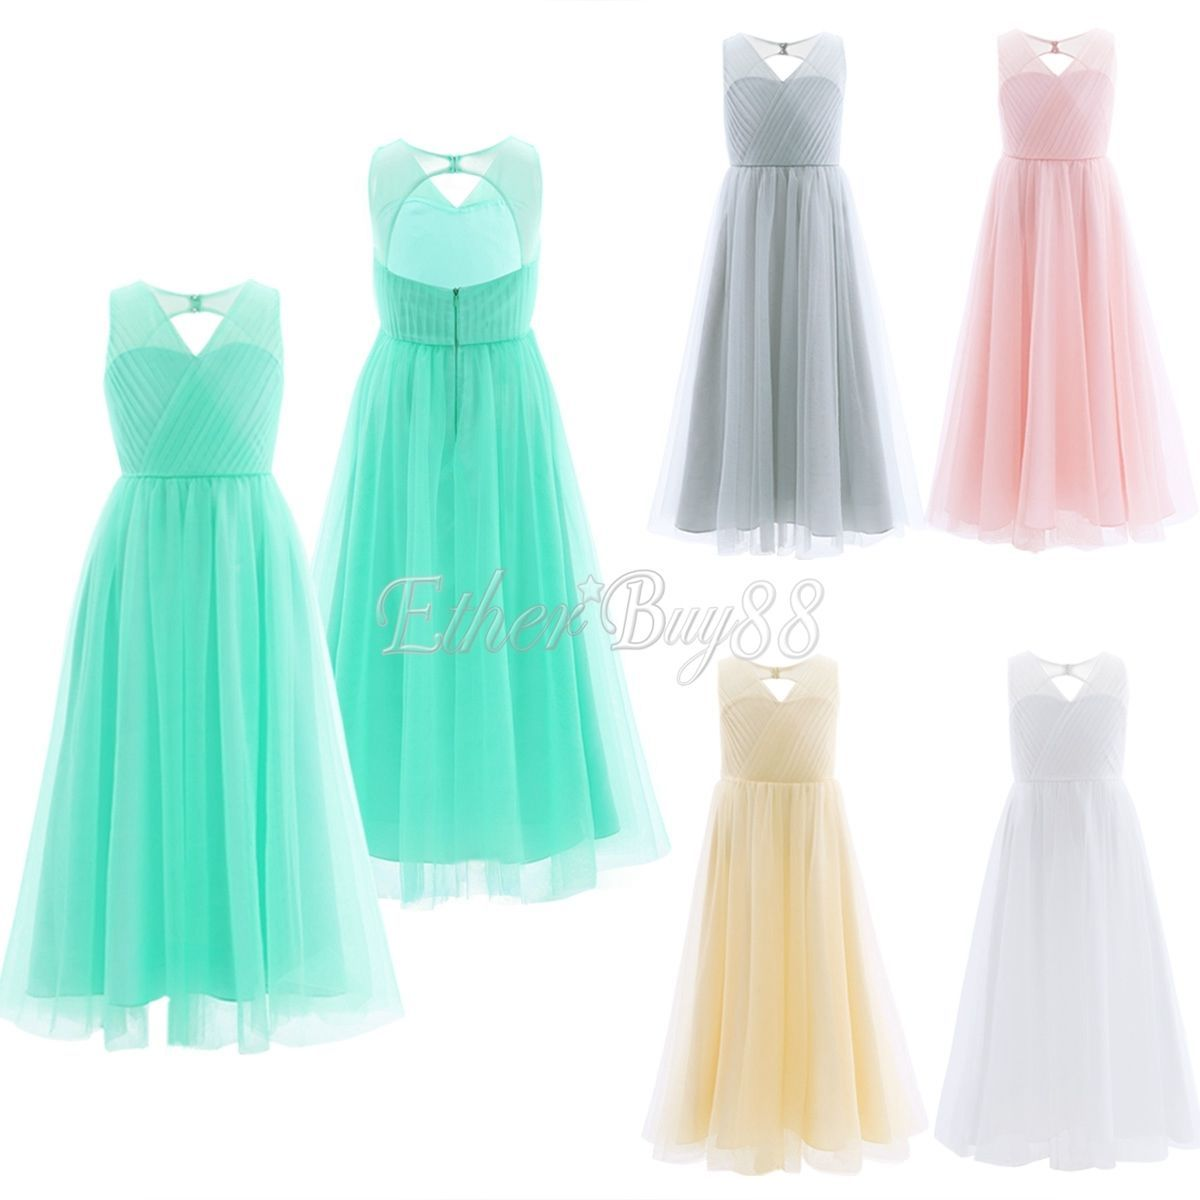 Dresses #ebay #Clothes, Shoes & Accessories | Princess and Products